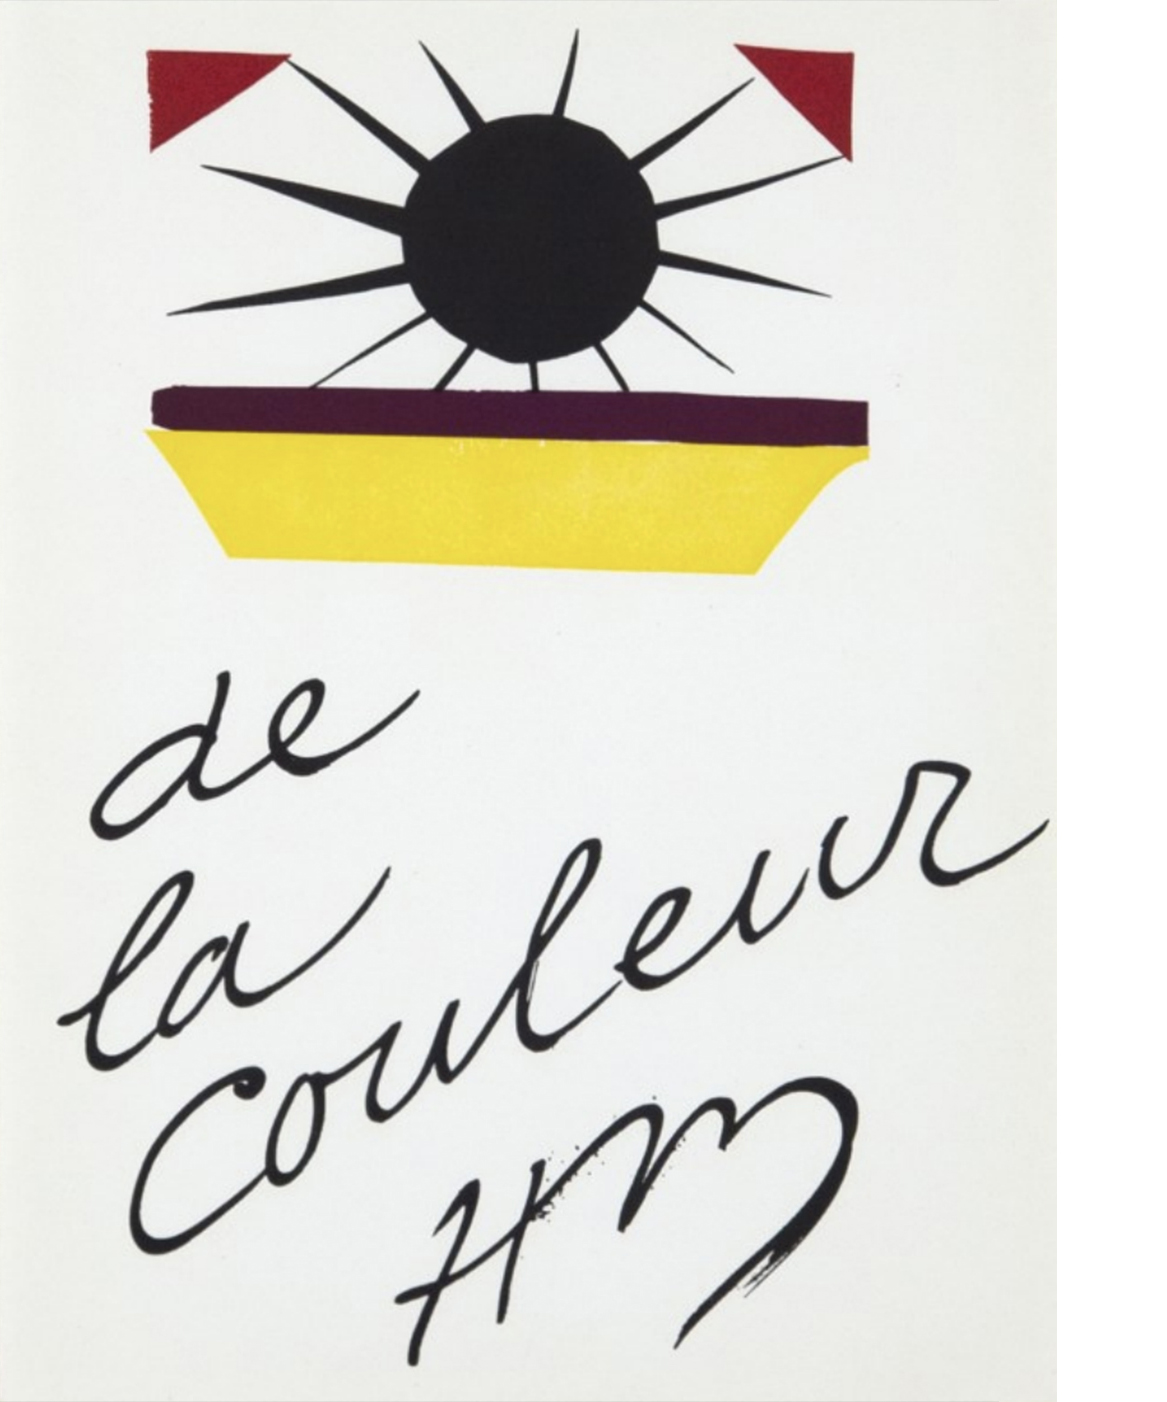 Verve was a modernist Parisian art magazine founded in 1937 to showcase original lithographs by the leading artists of the day, with outstanding technical quality. Henri MATISSE (1869-1954) Verve Vol. 4, No. 13: De la couleur, 1945